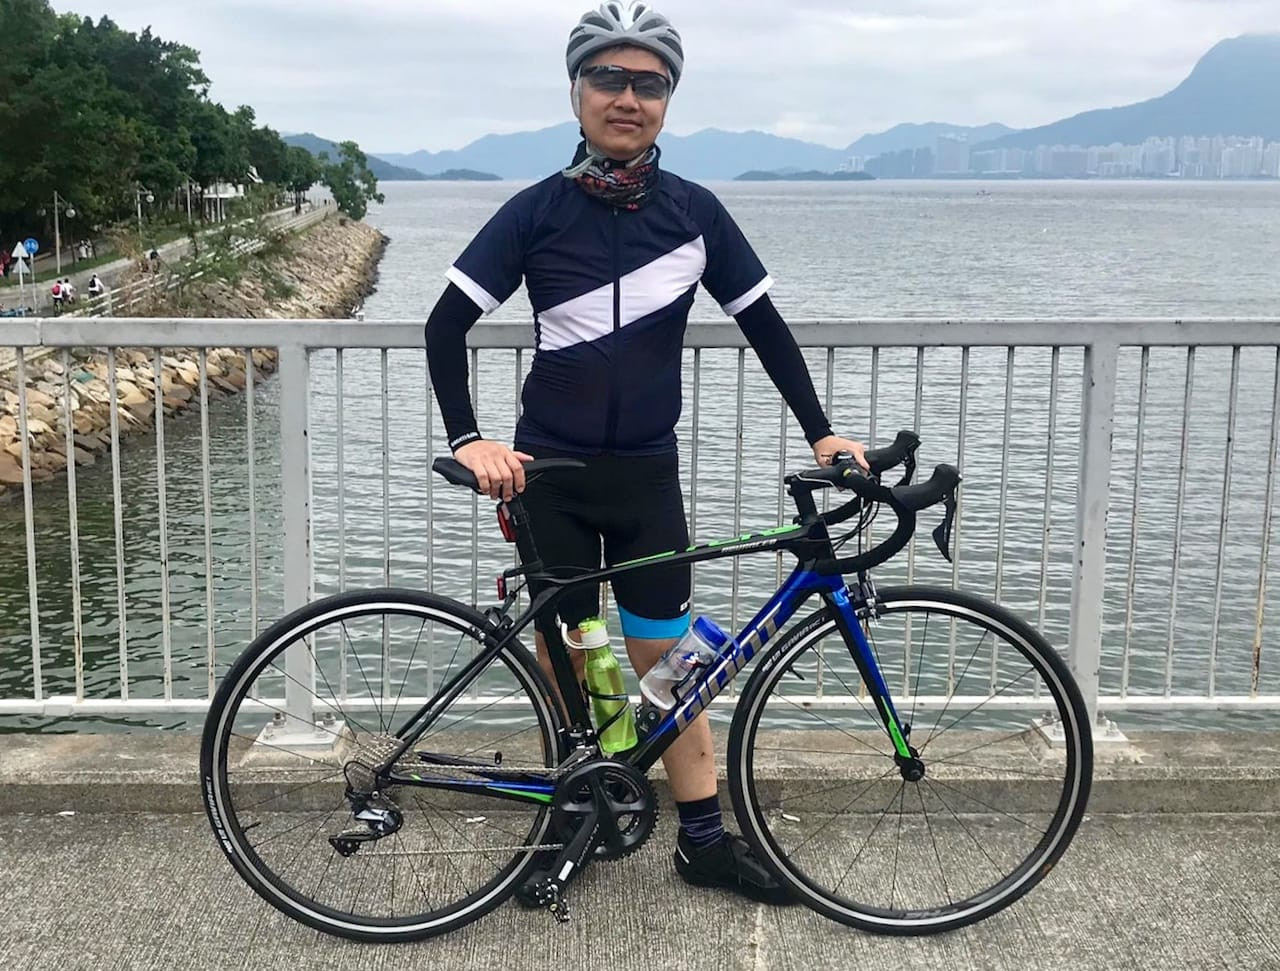 My buddy with his new 2019 Giant TCR Advanced 1-KOM